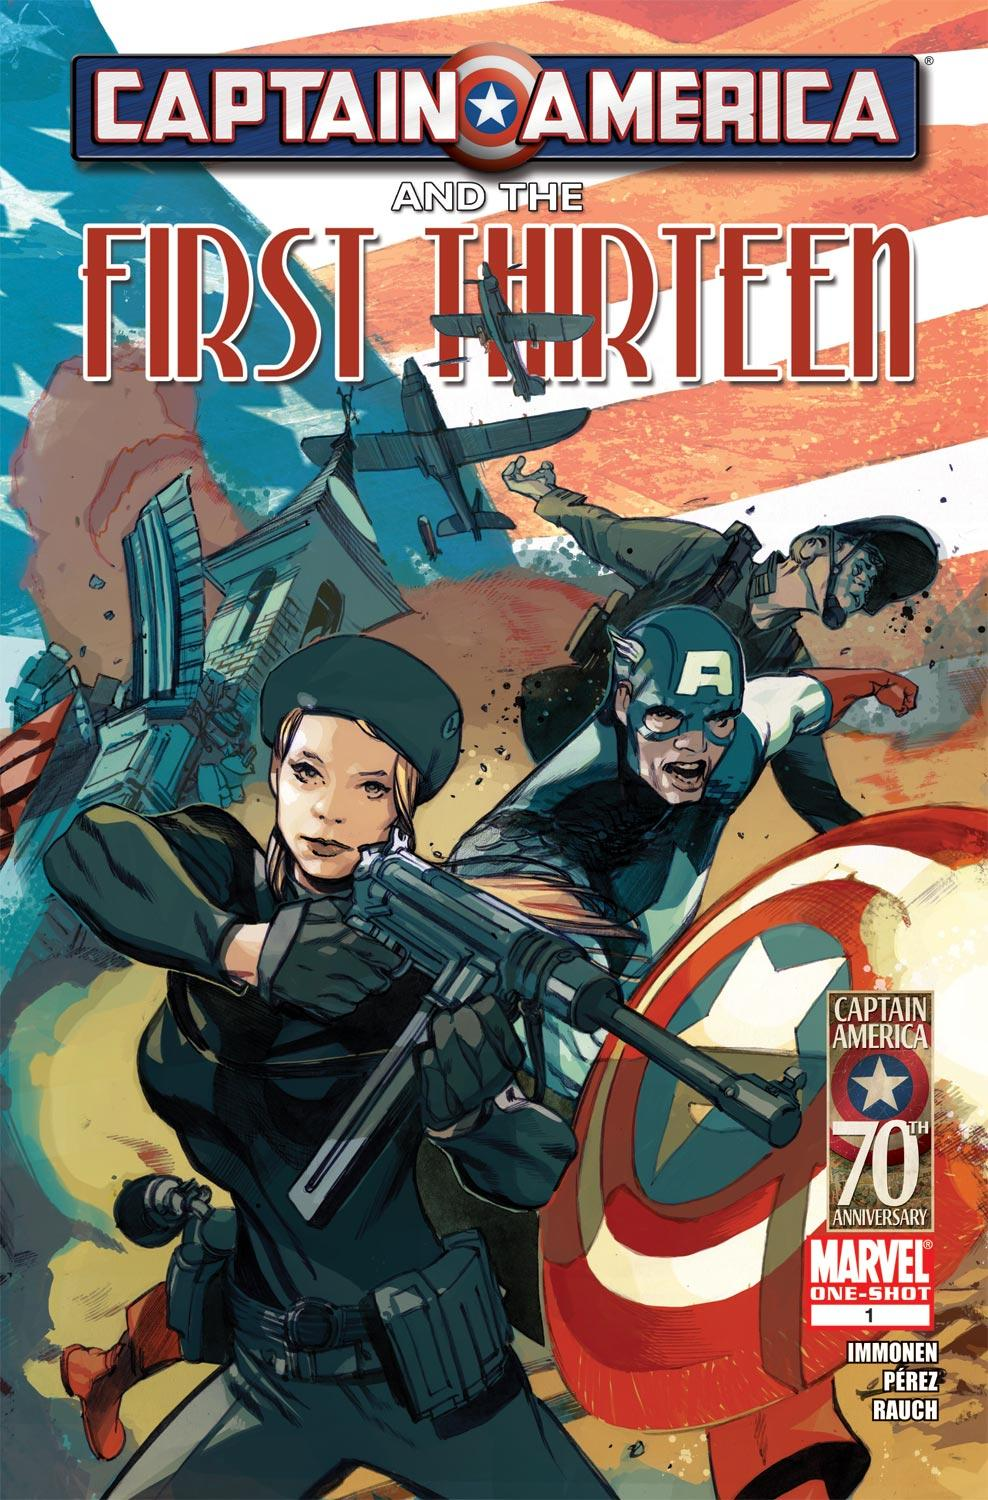 Captain America and the First Thirteen (2011) #1